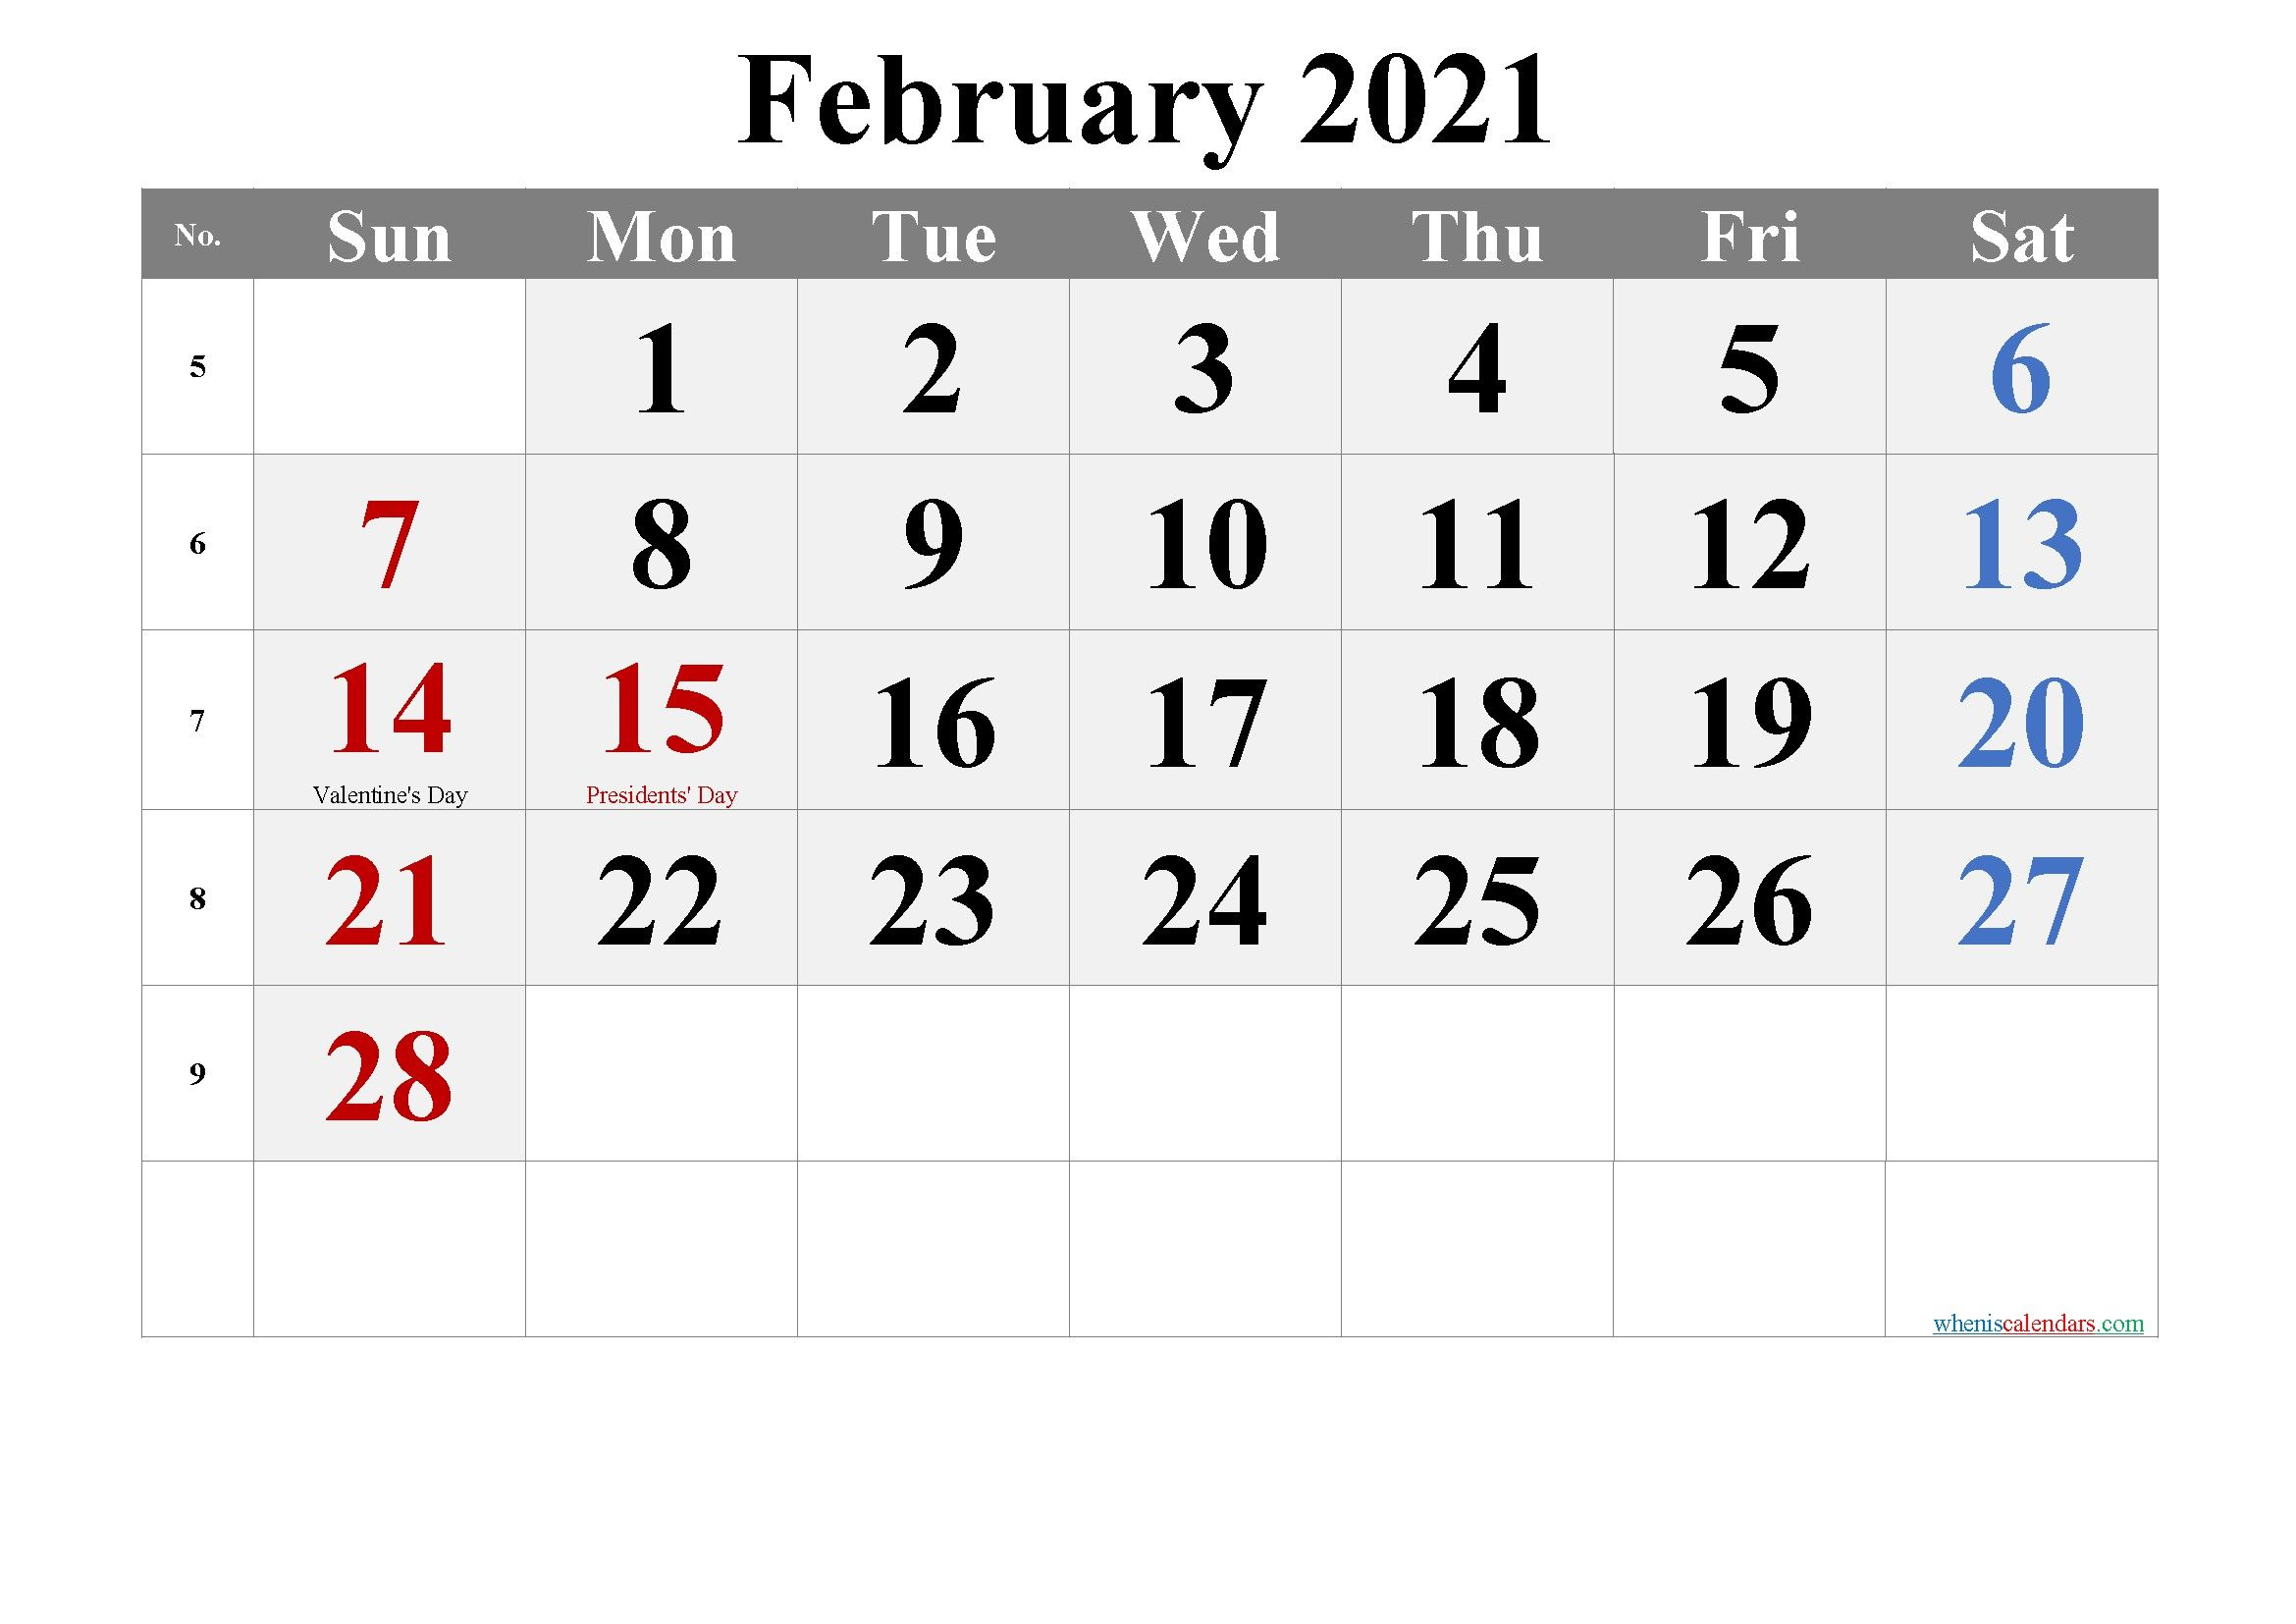 Printable Calendar January February 2021 In 2020 | Calendar for Free Print 2021 Calendars Without Downloading